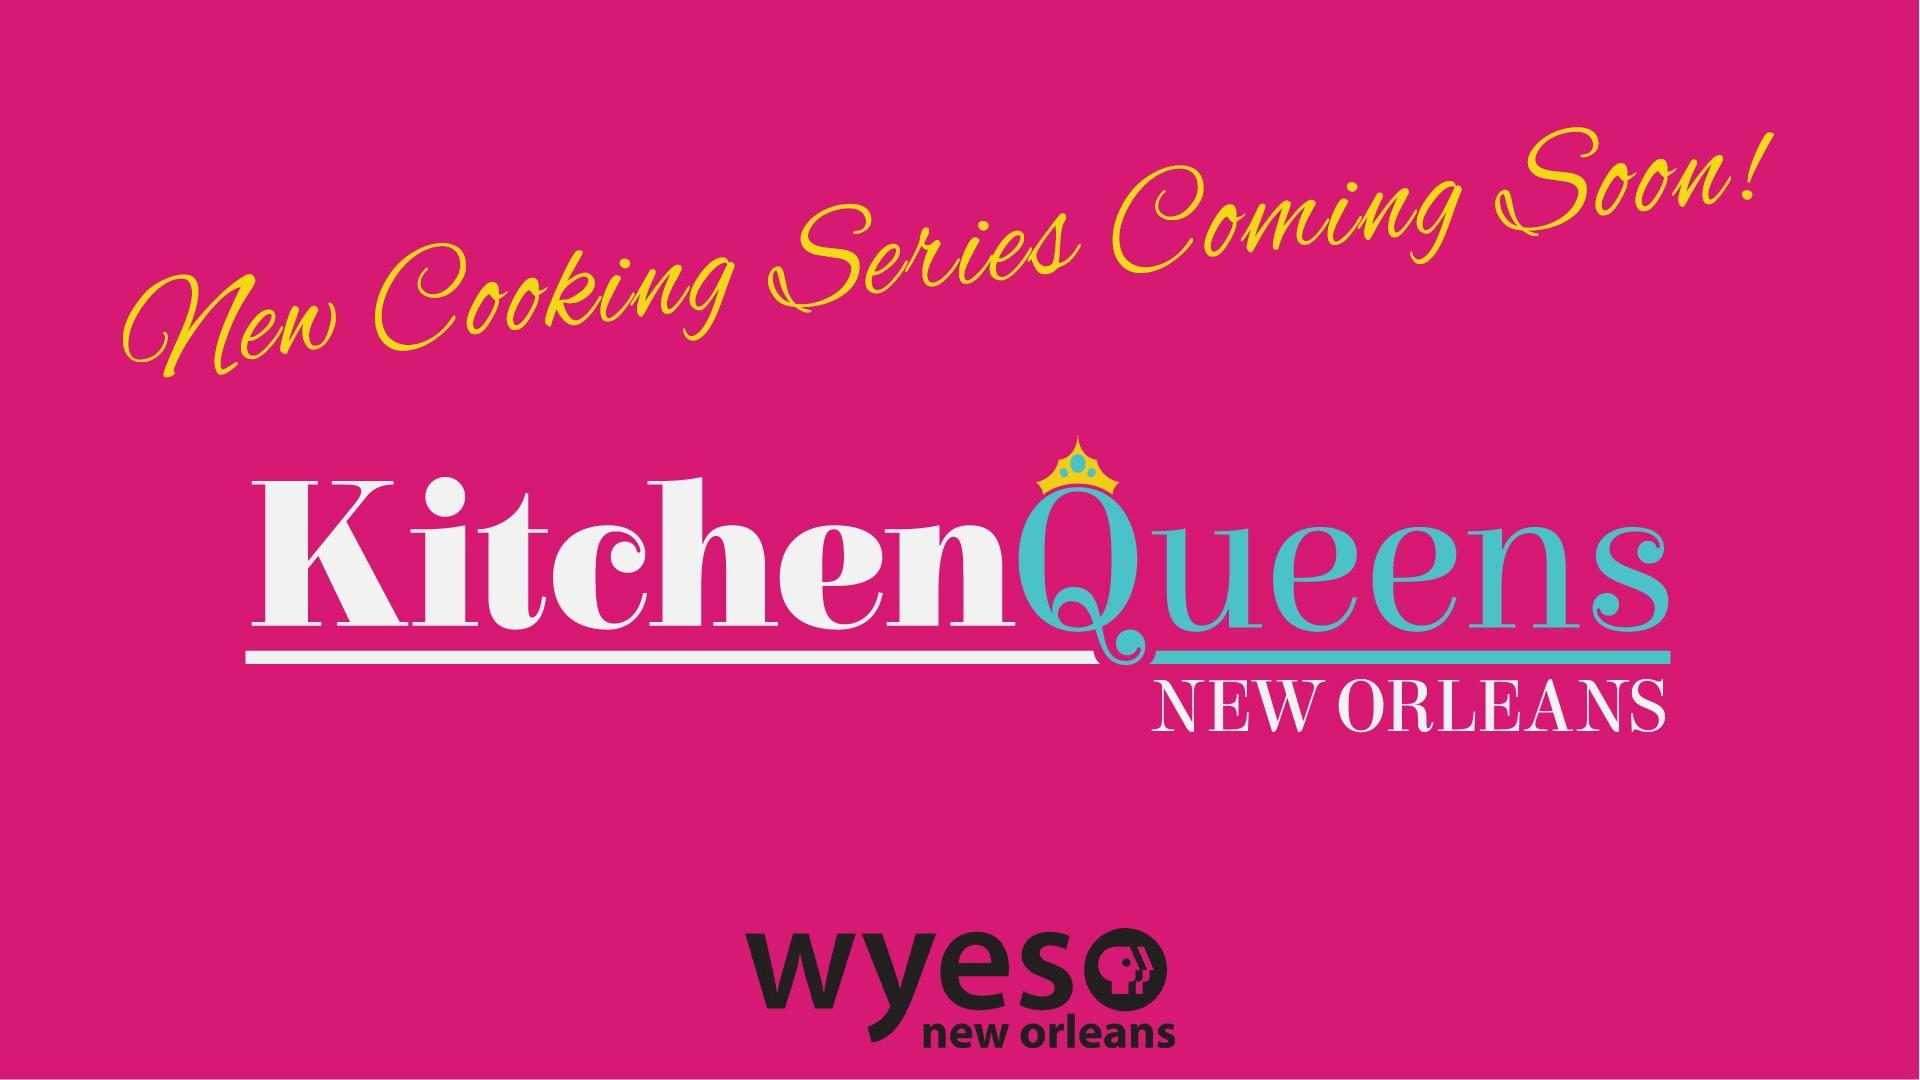 Kitchen Queens: New Orleans Coming Soon!